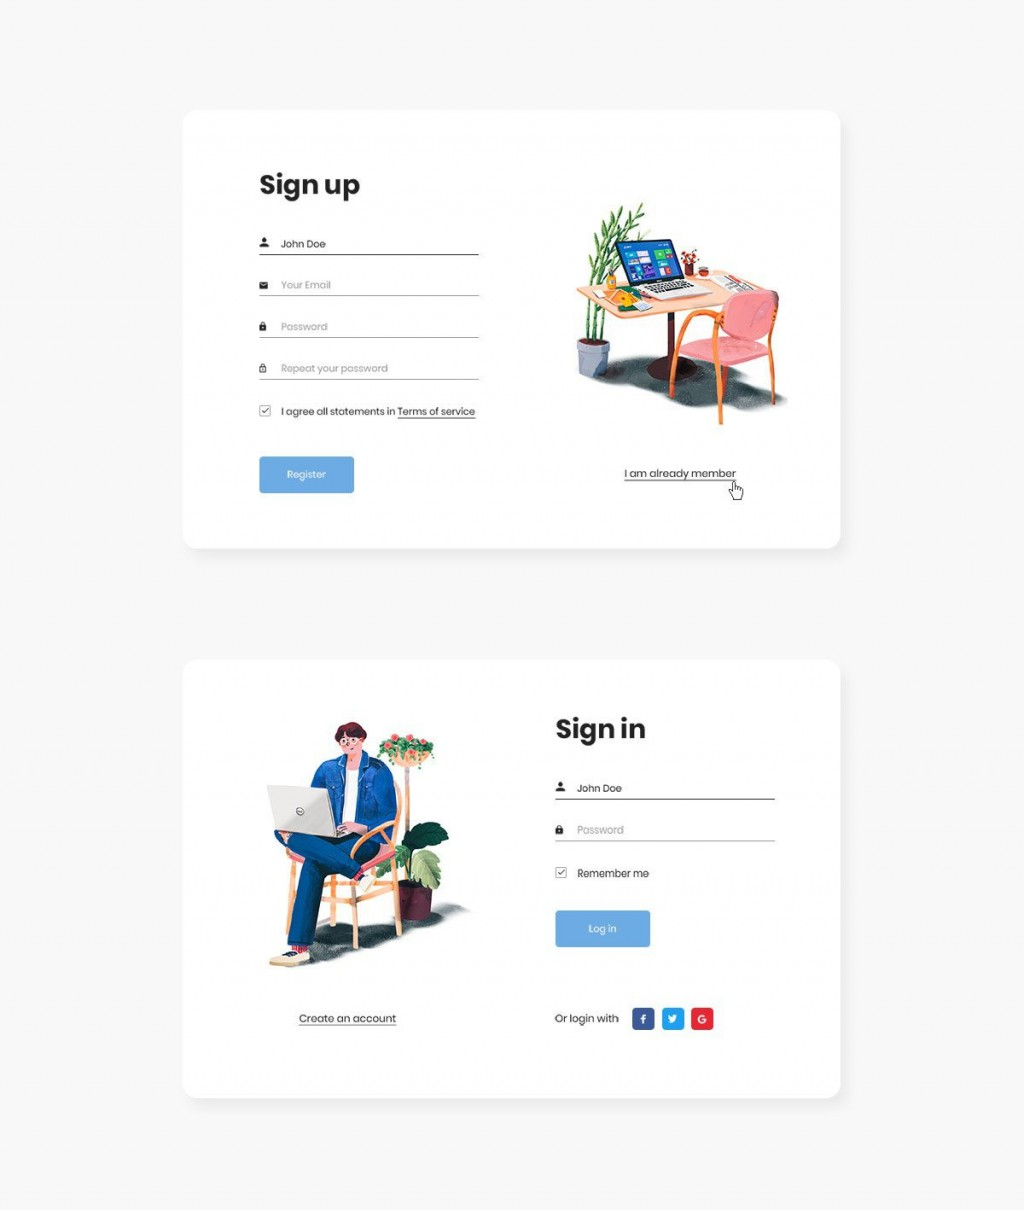 004 Astounding Registration Form Template Free Example  Printable Event SampleLarge